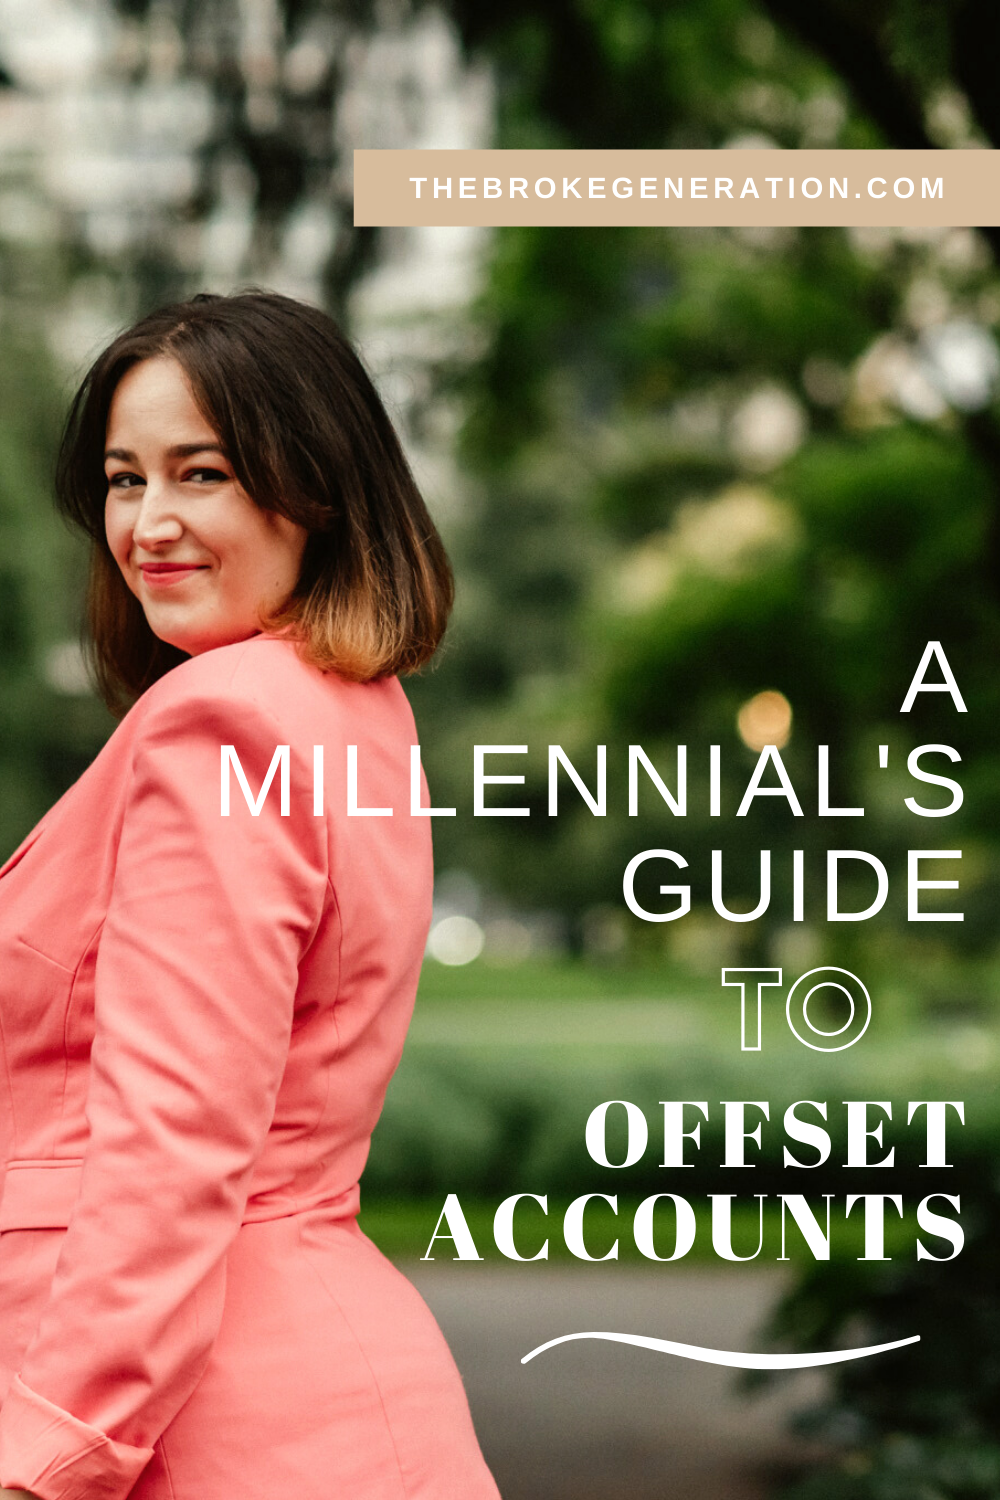 A Millennial's Guide to Offset Accounts